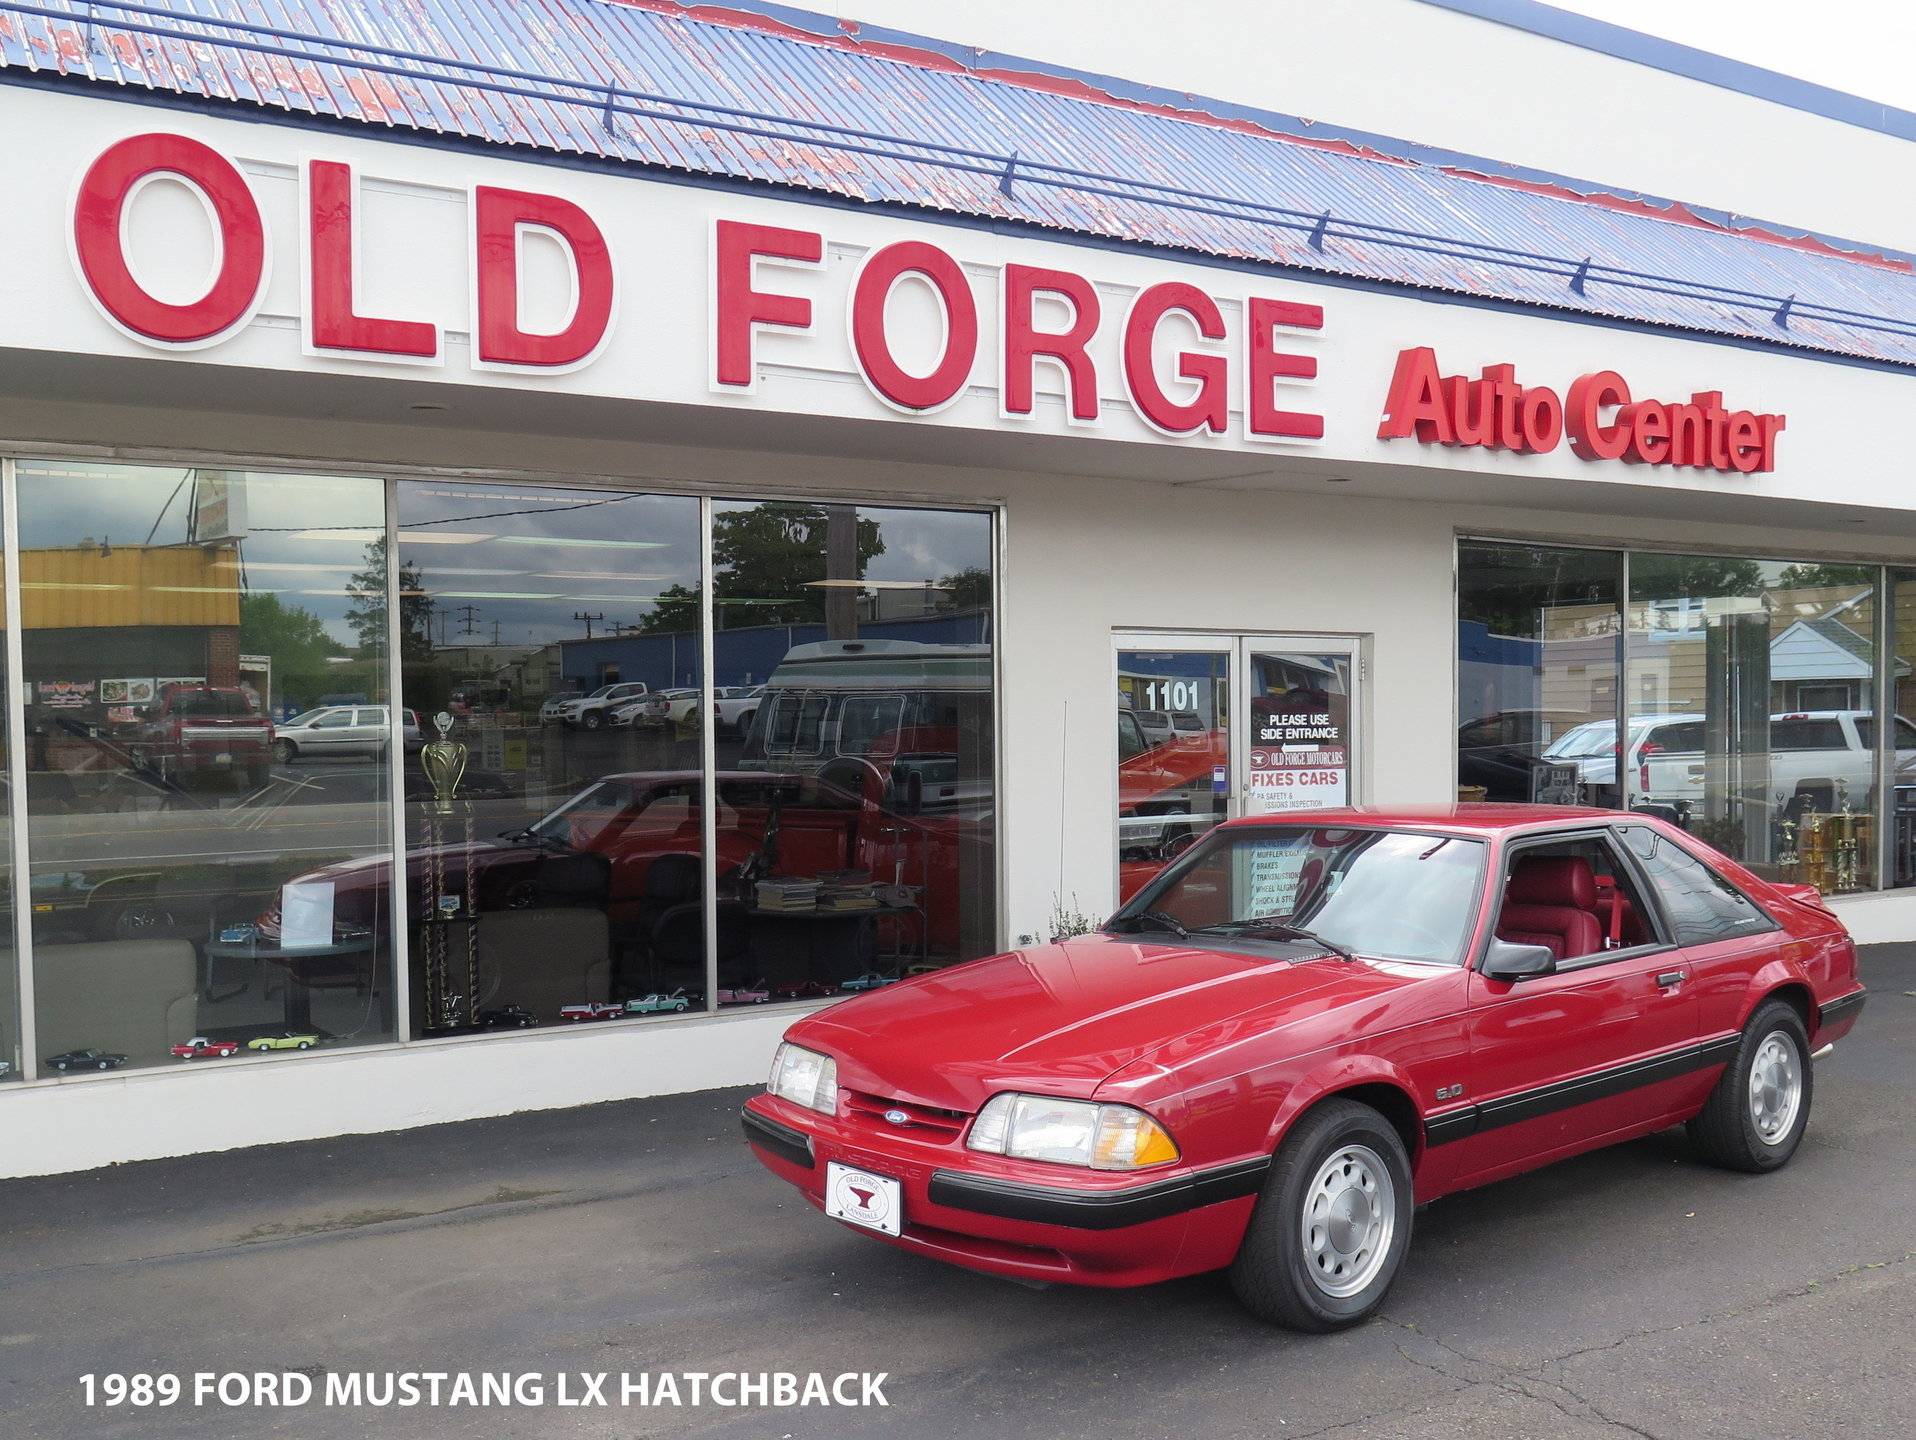 24225573465cc hd 1989 ford mustang lx